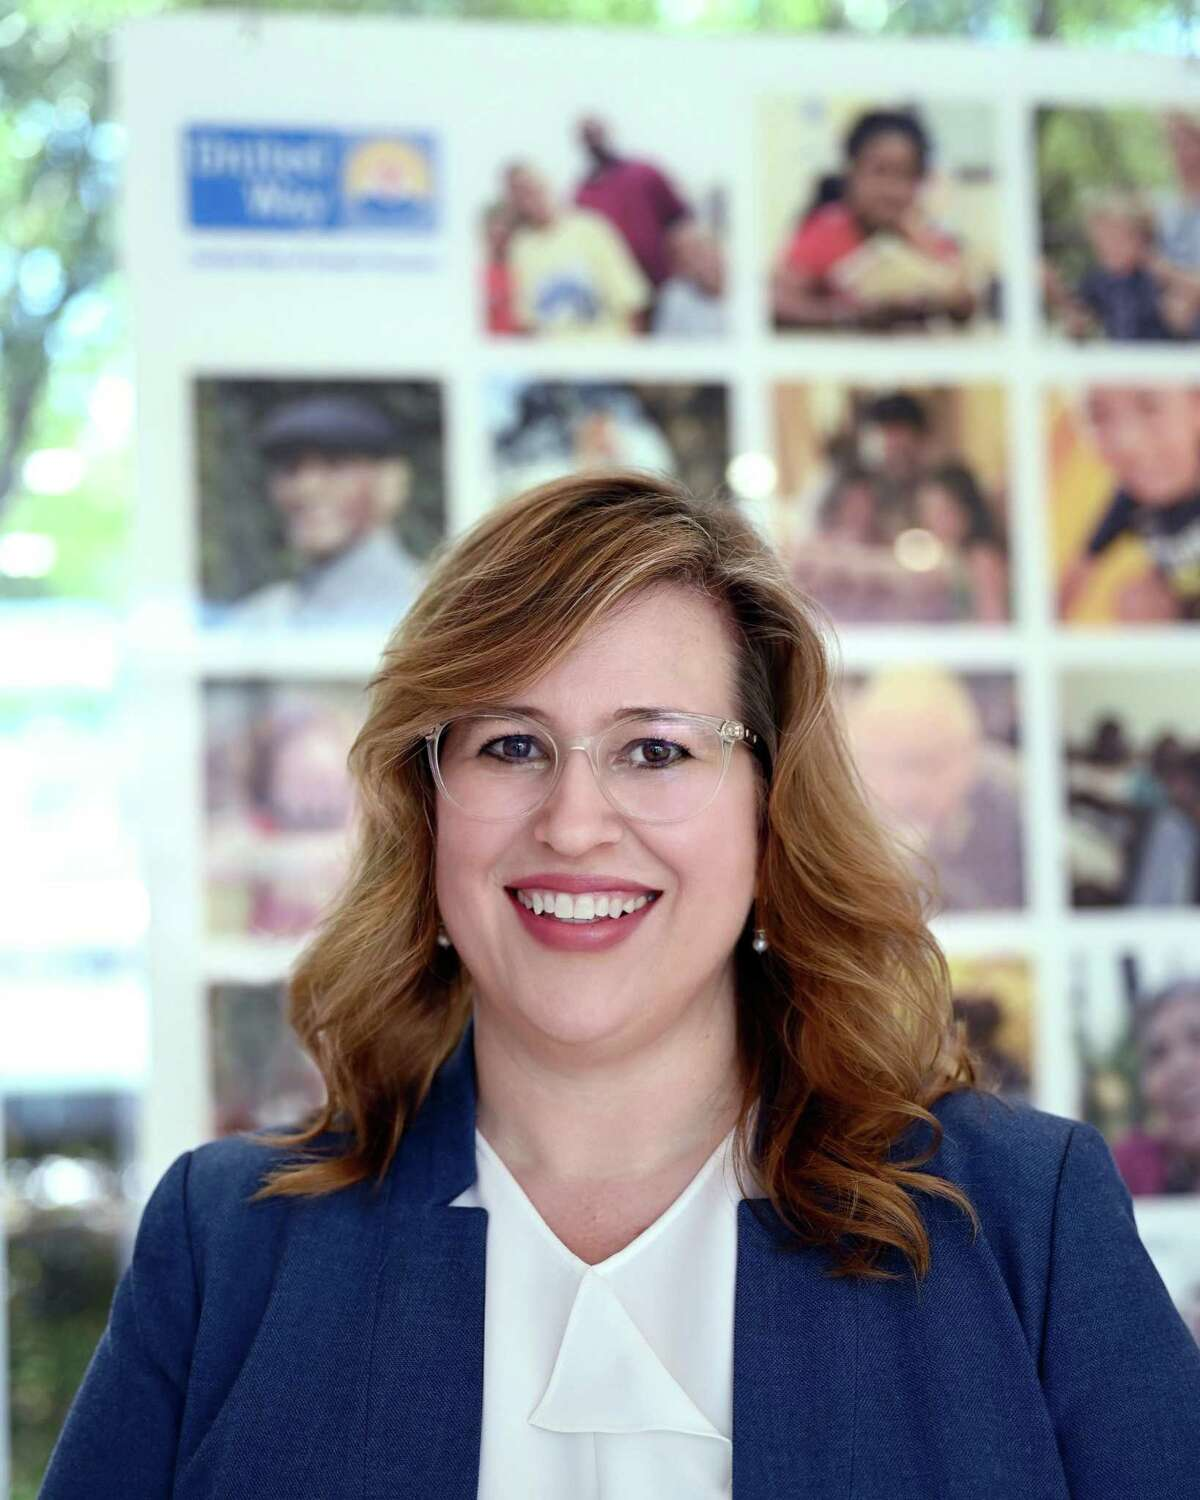 Amanda McMillian became president and CEO of the United Way of Greater Houston effective May 1.